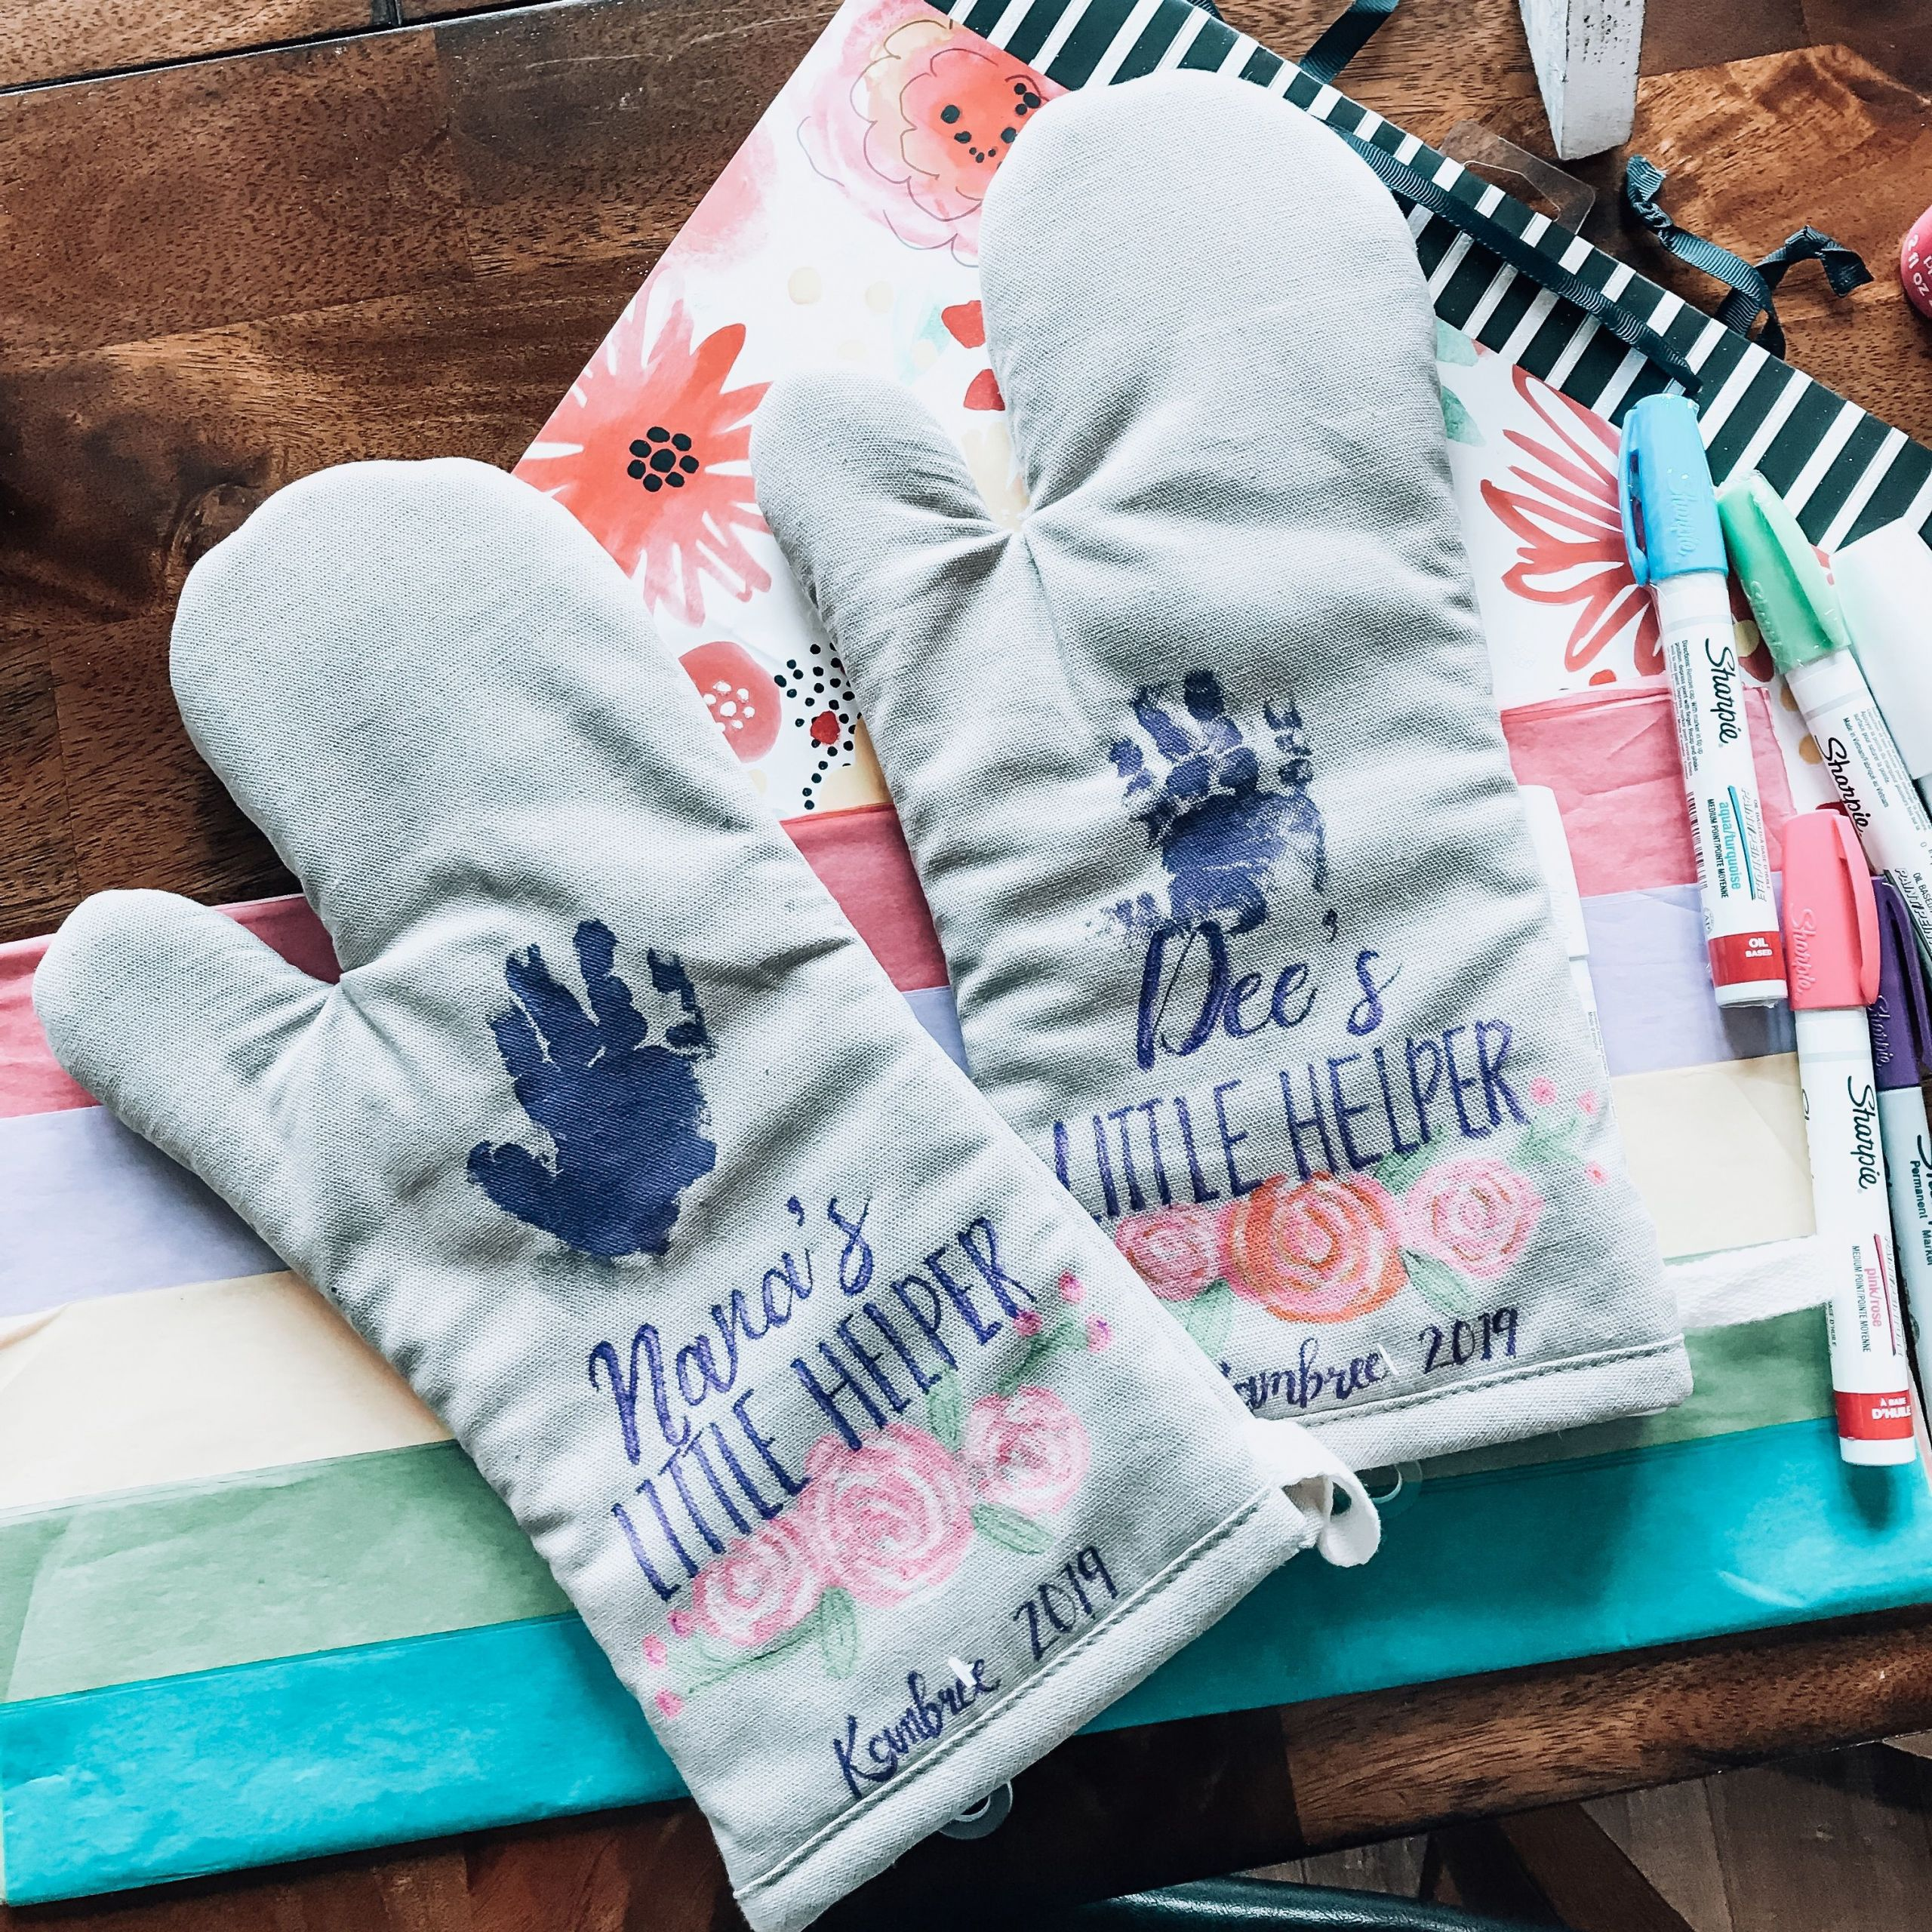 Homemade Gifts For Grandma From Baby  DIY Personalized Handprint Oven Mitt